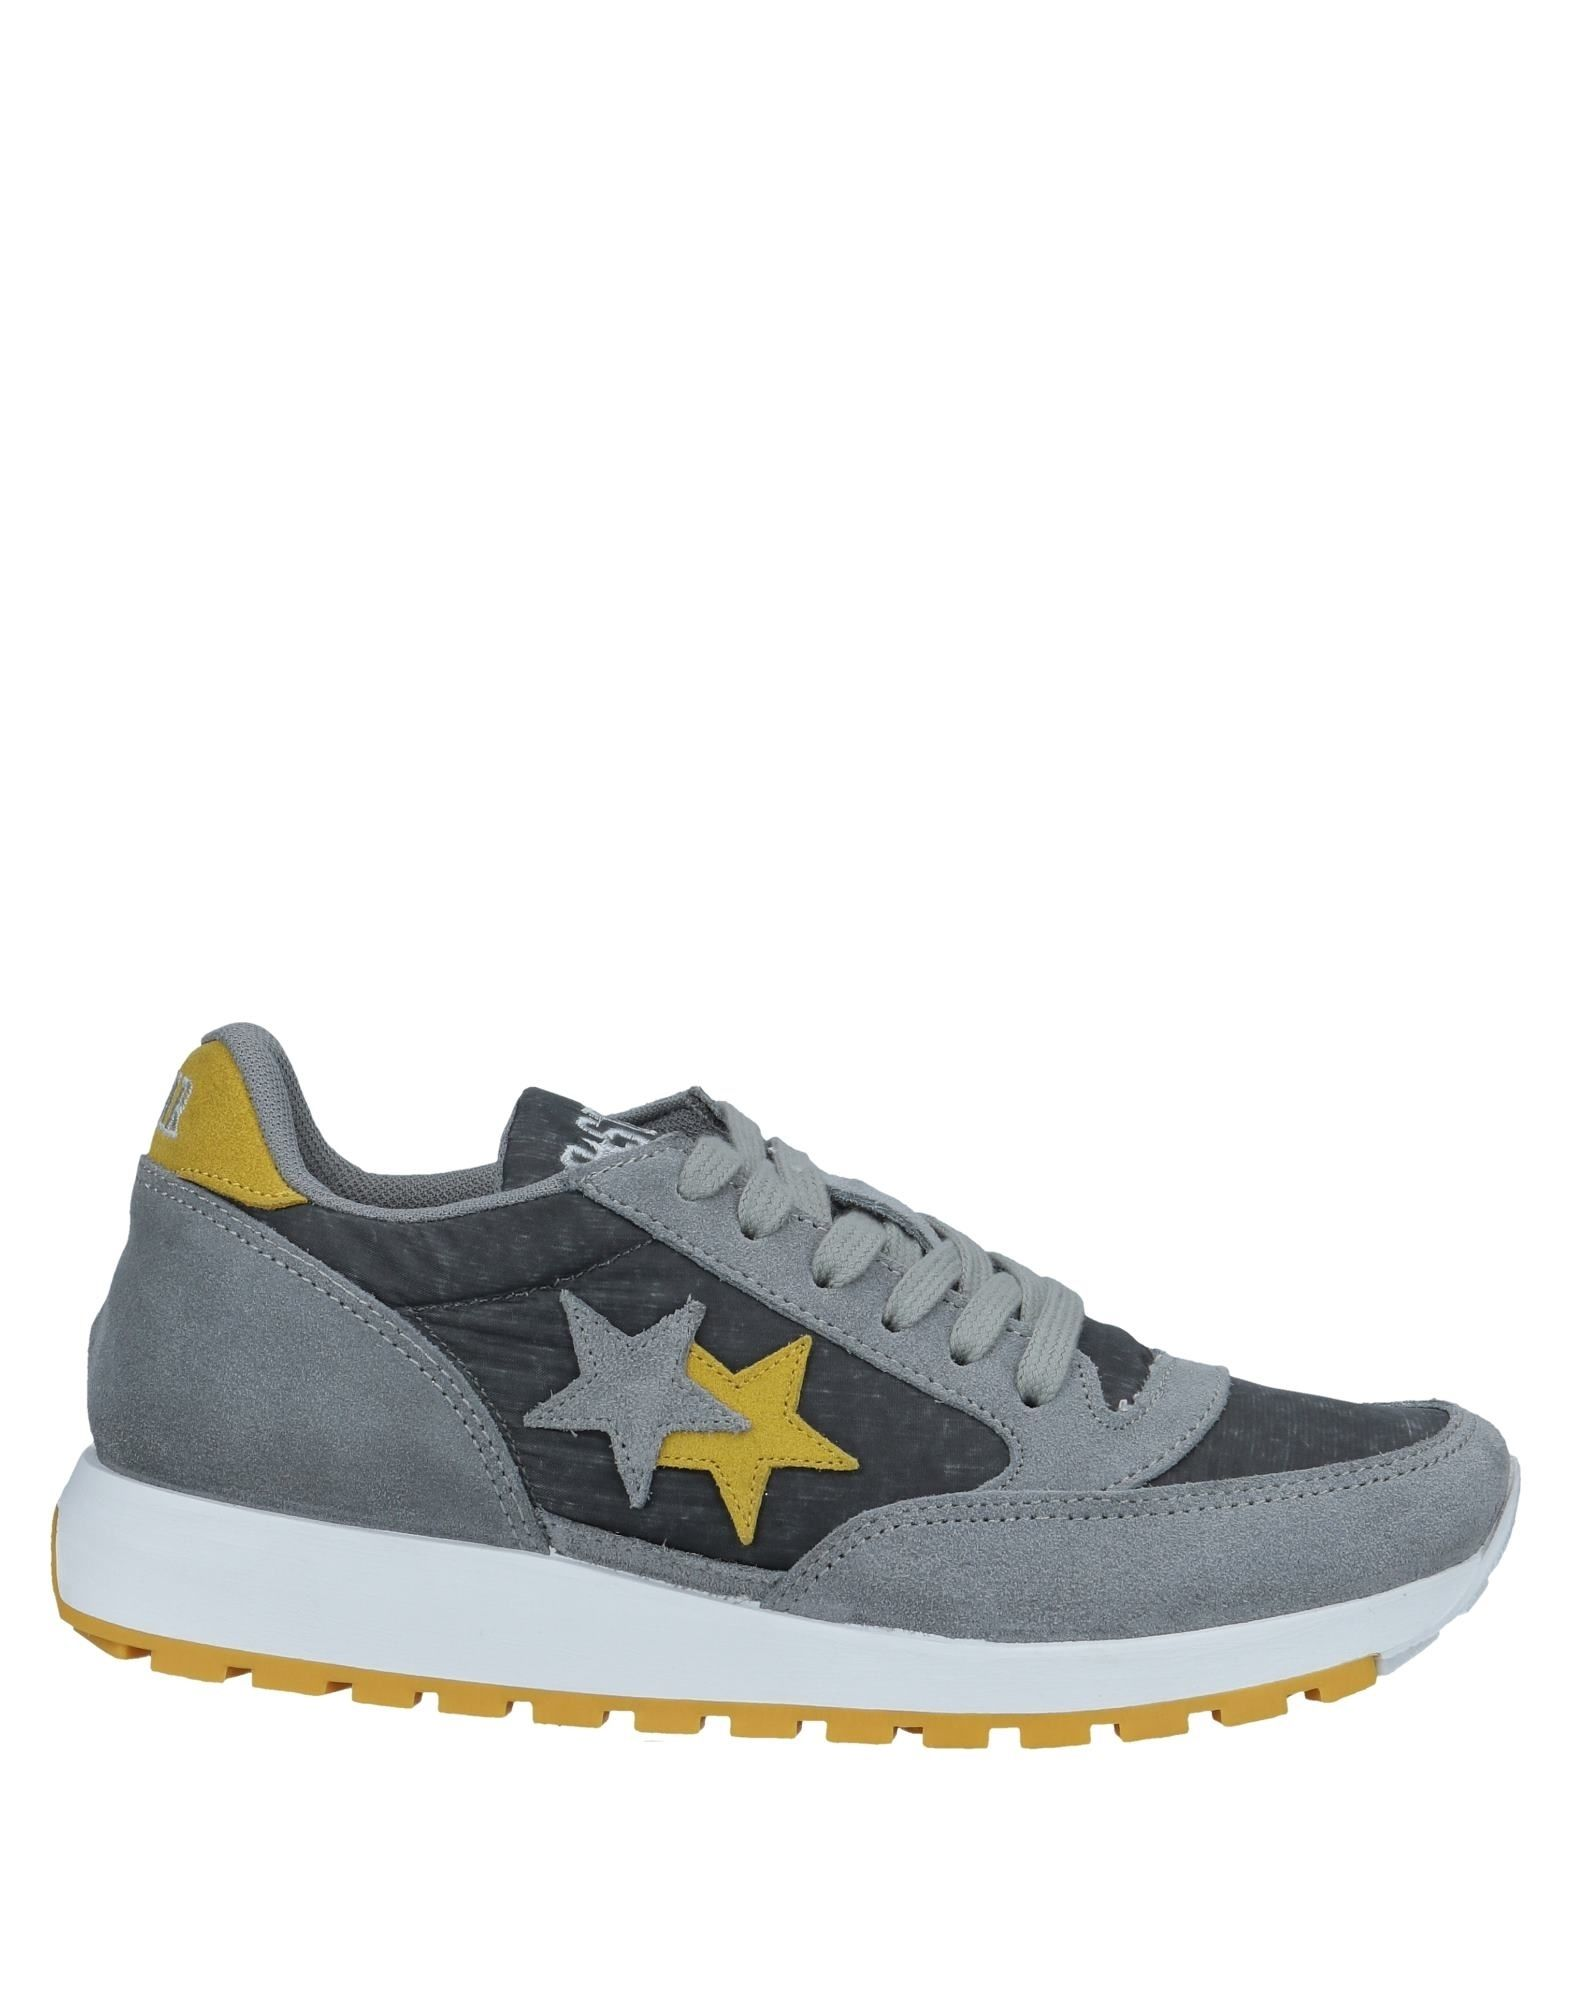 2Star 2Star  Sneakers Damen  11548315OI 6c6691